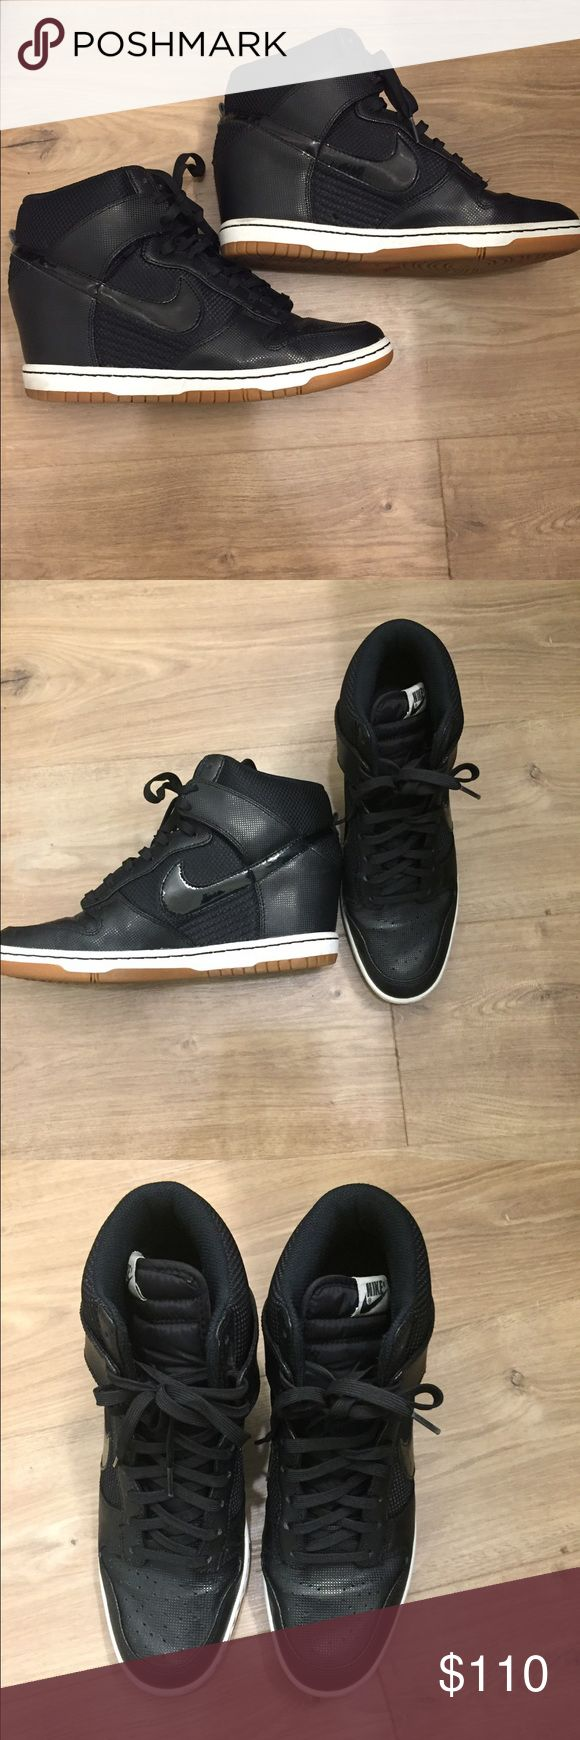 Nike Dunk Sky Hi Classic Nike Dunks with a a gum bottom and wedge! Super comfortable shoes, only worn a handful of times. Nike Shoes Sneakers